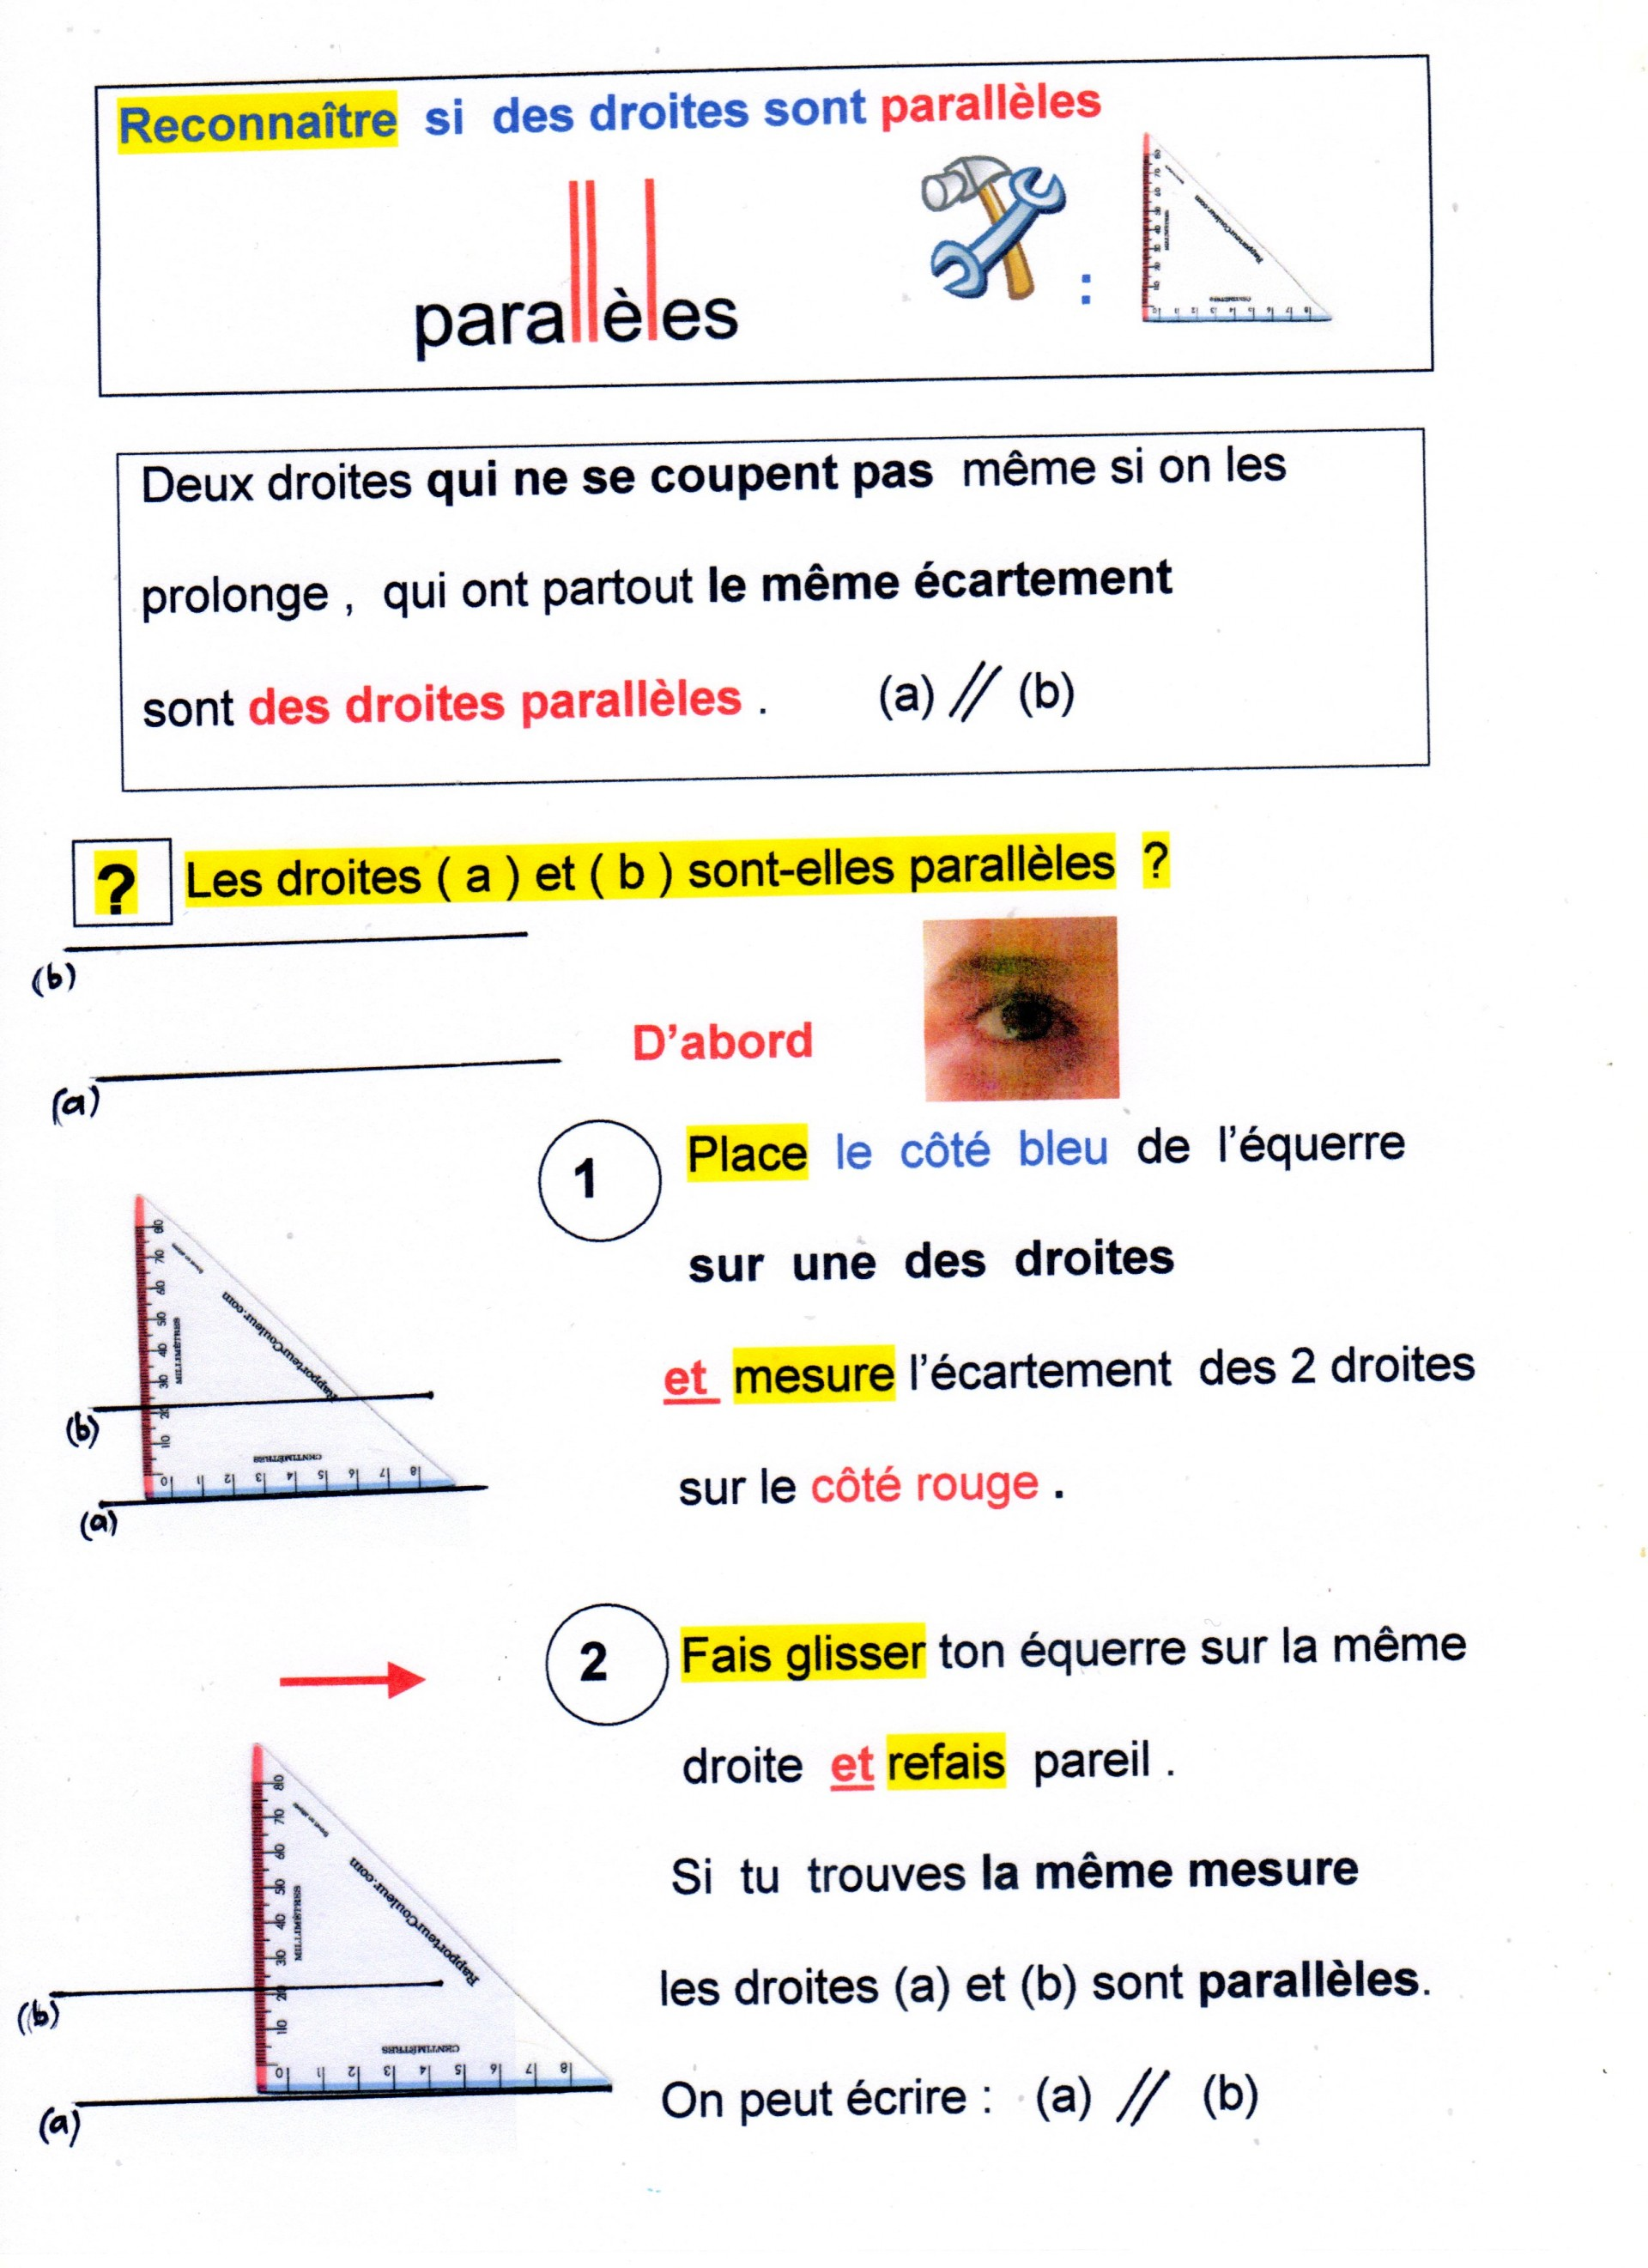 017 Essayer Essay Example Impressive De Or A Conjugation Imperative Ne Pas Rire 1920